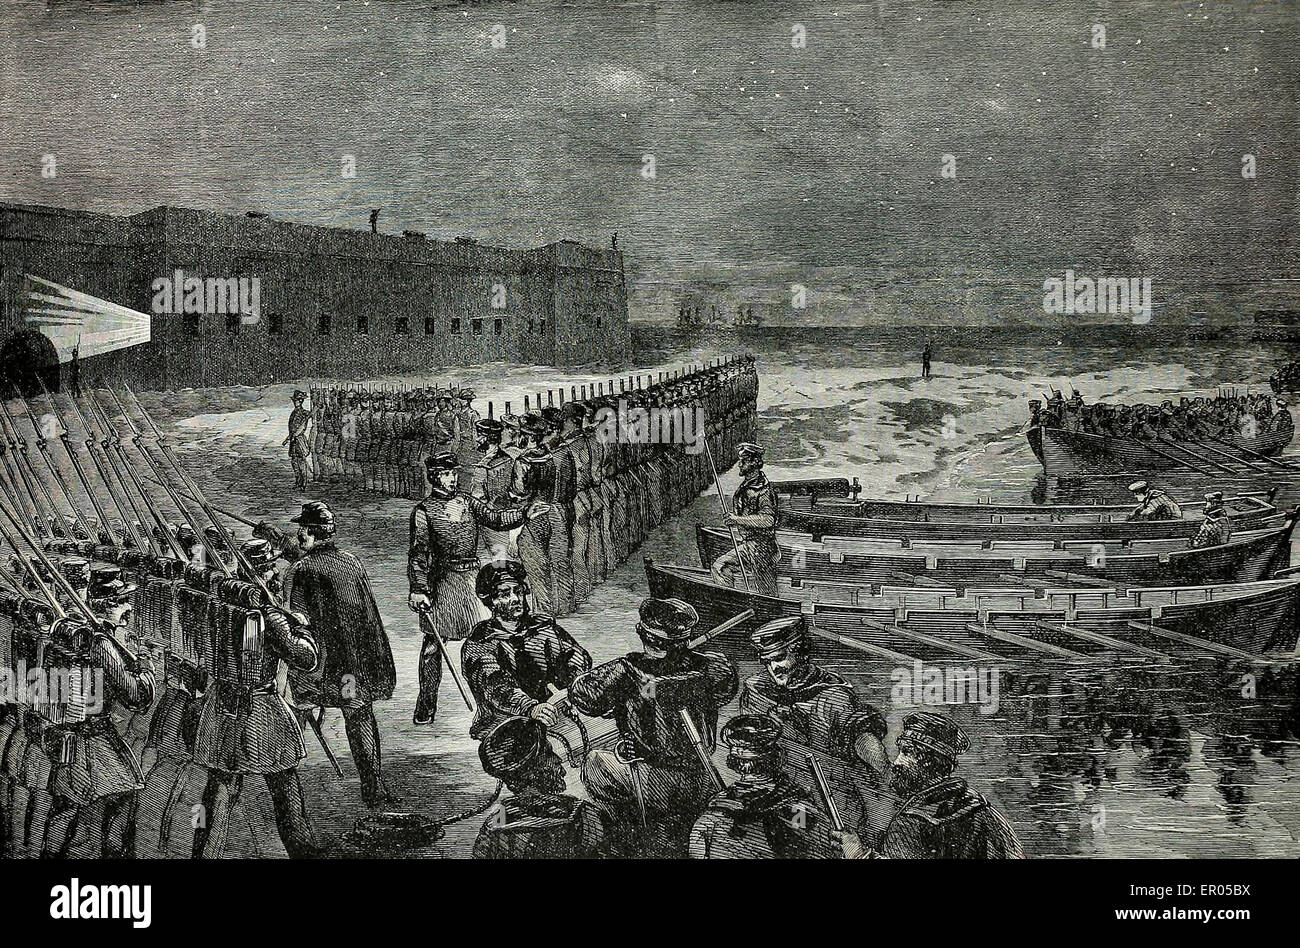 Reinforcement of Fort Pickens by Company A First Artillery on Saturday Morning April 13, 1861 - Stock Image